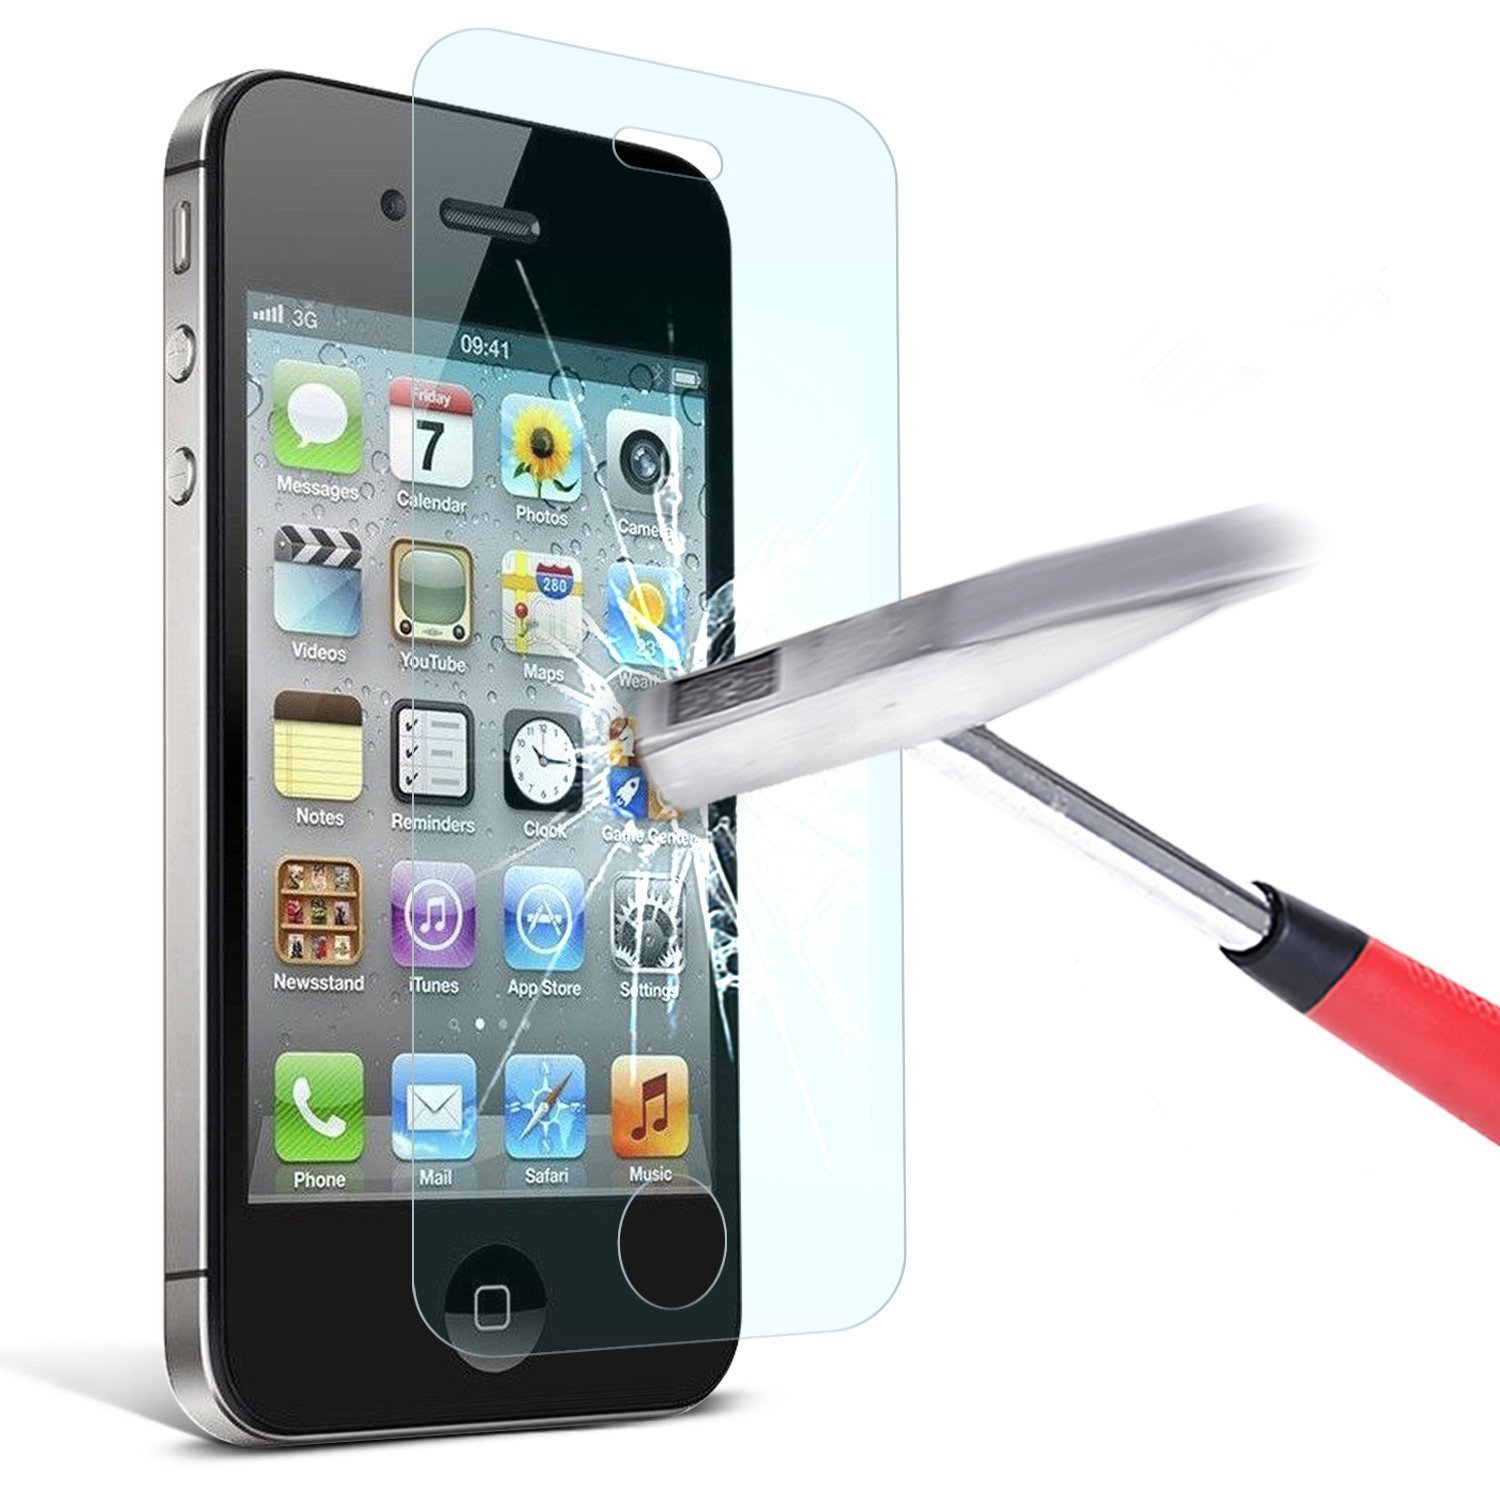 2915cac2e1a Amazon.com: TANTEK Tempered Glass Screen Protector for Apple iPhone 4/4S,  Clear, 2 Pack: Cell Phones & Accessories